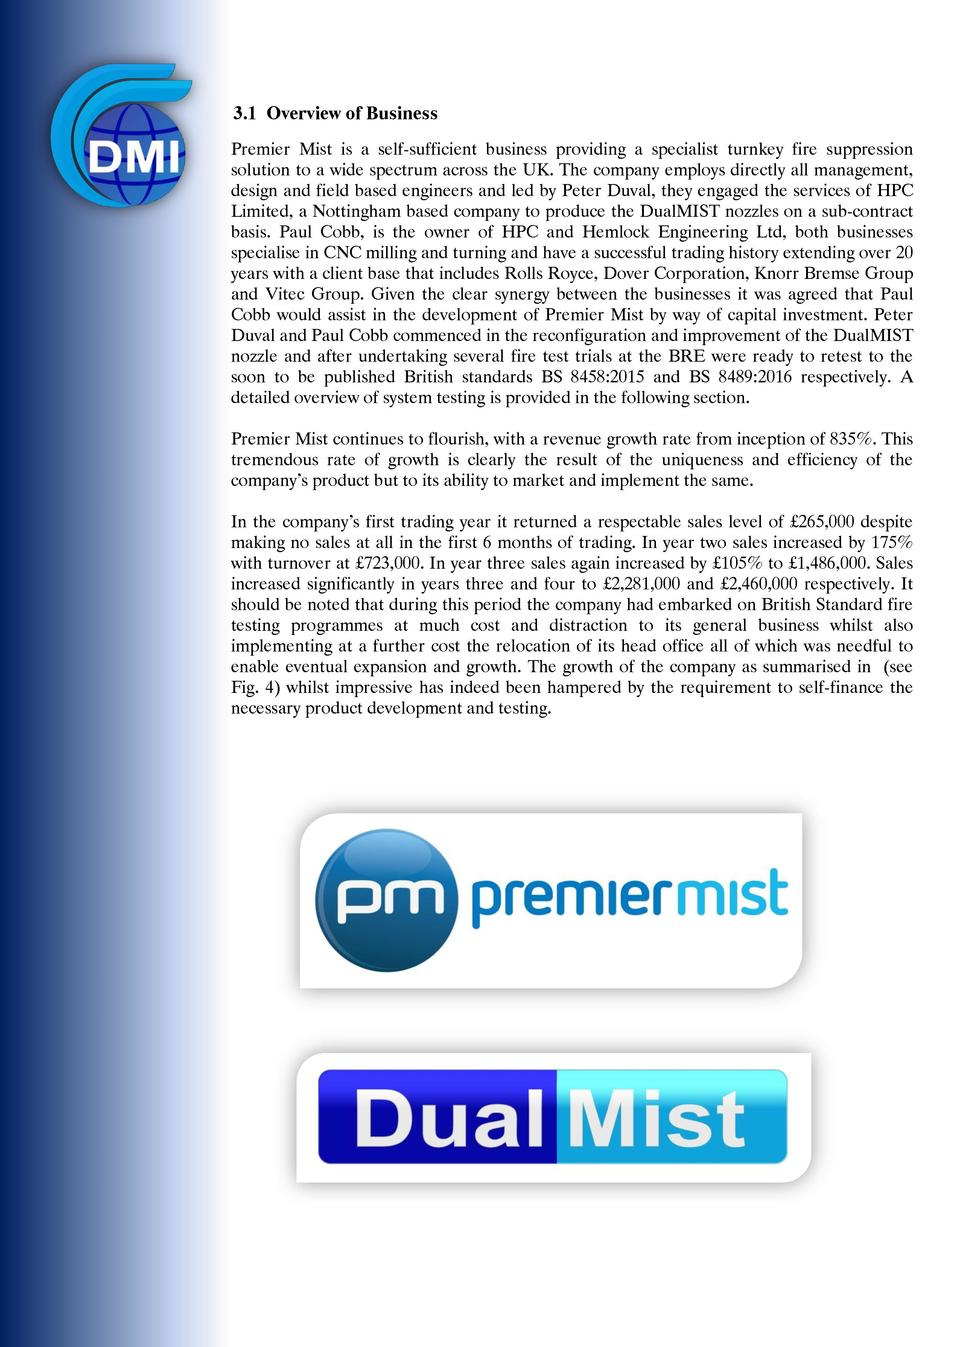 3.1 Overview of Business Premier Mist is a self-sufficient business providing a specialist turnkey fire suppression soluti...